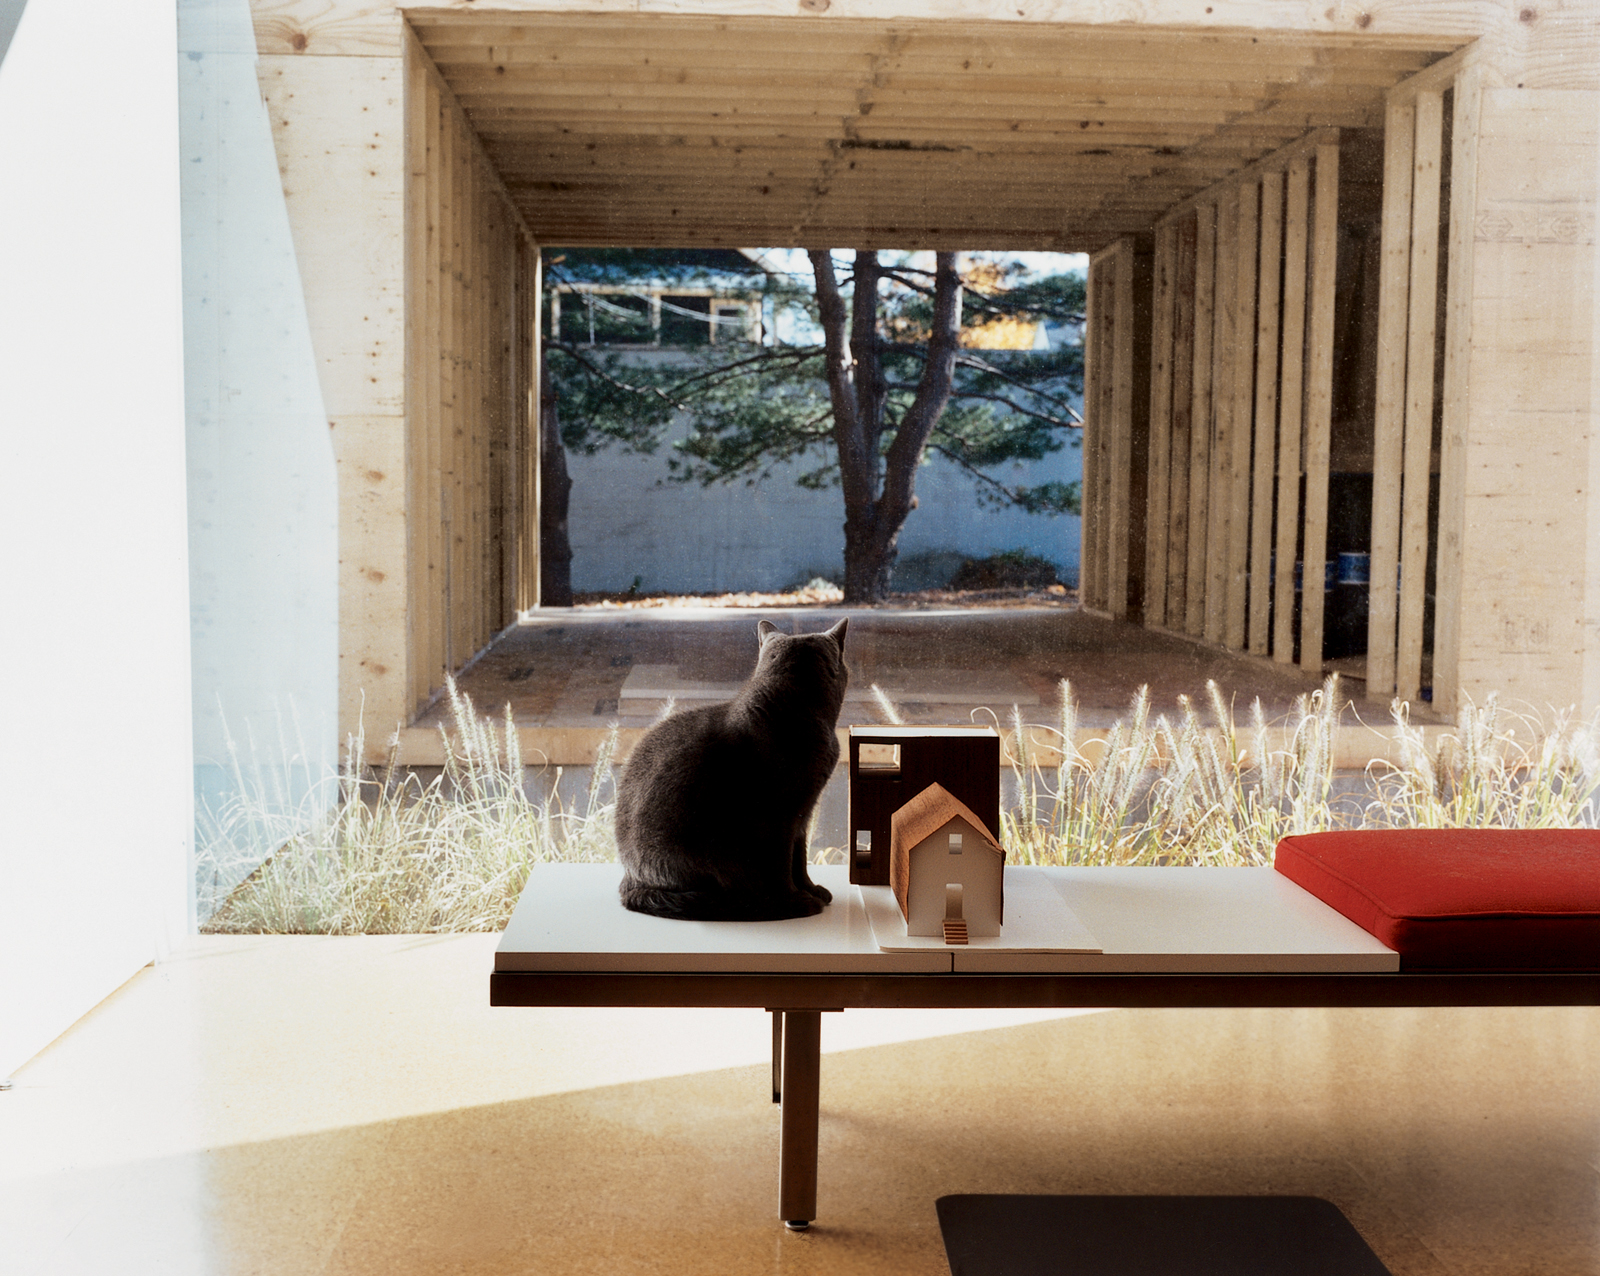 Seated on a George Nelson bench, feline resident Miu Miu gazes through the east picture window at the ongoing construction. Sharing the bench is a quarter-inch-to-one-inch-scale model of the house and addition.